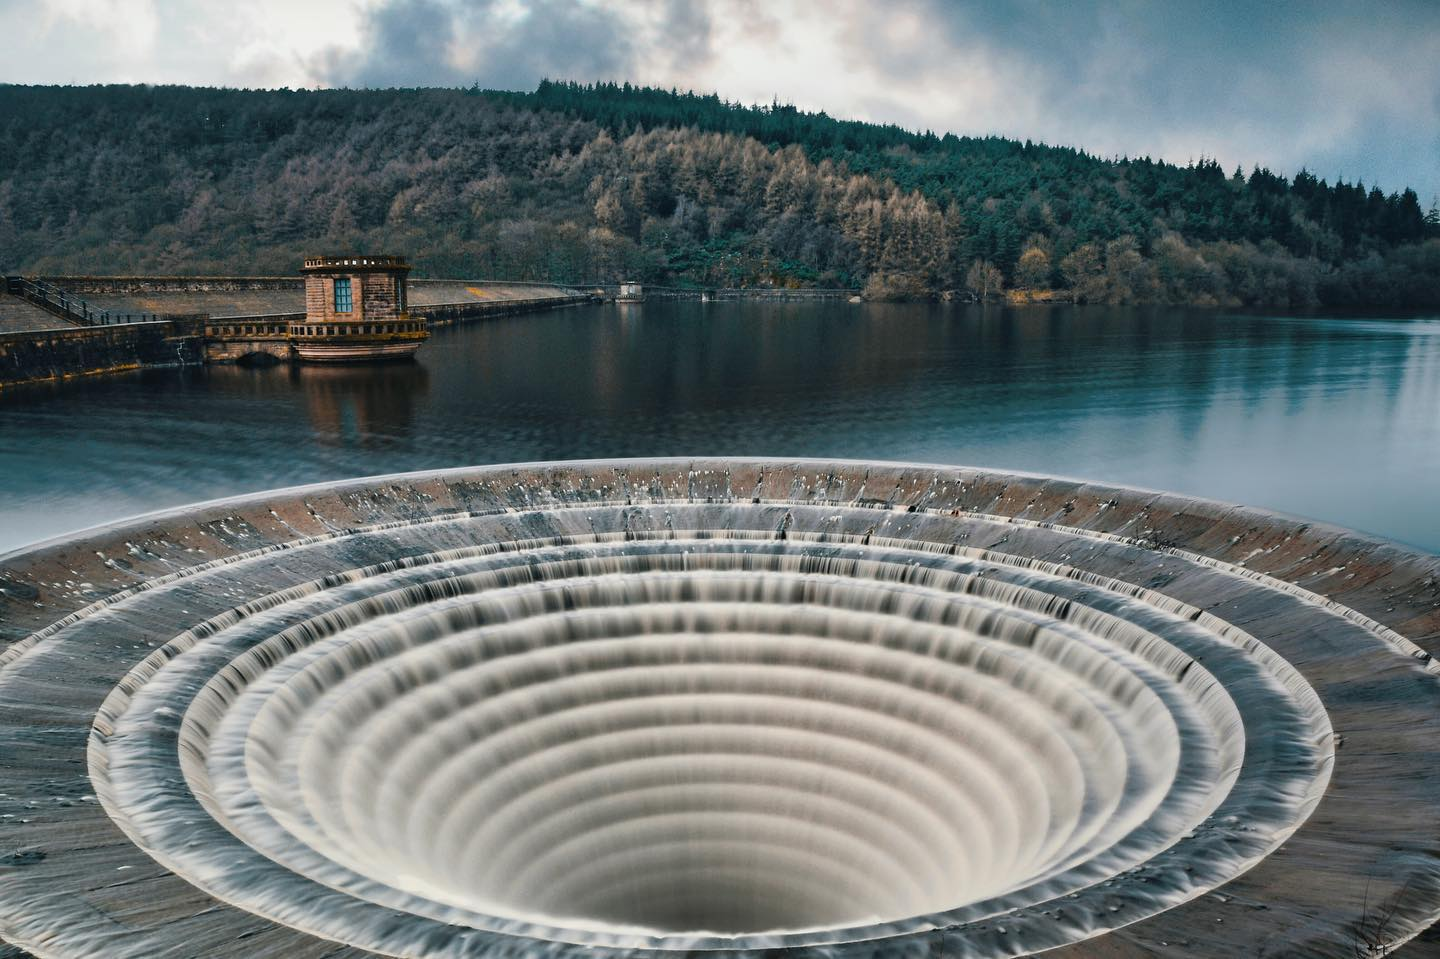 Plughole at Ladybower Reservoir, Peak District, United Kingdom